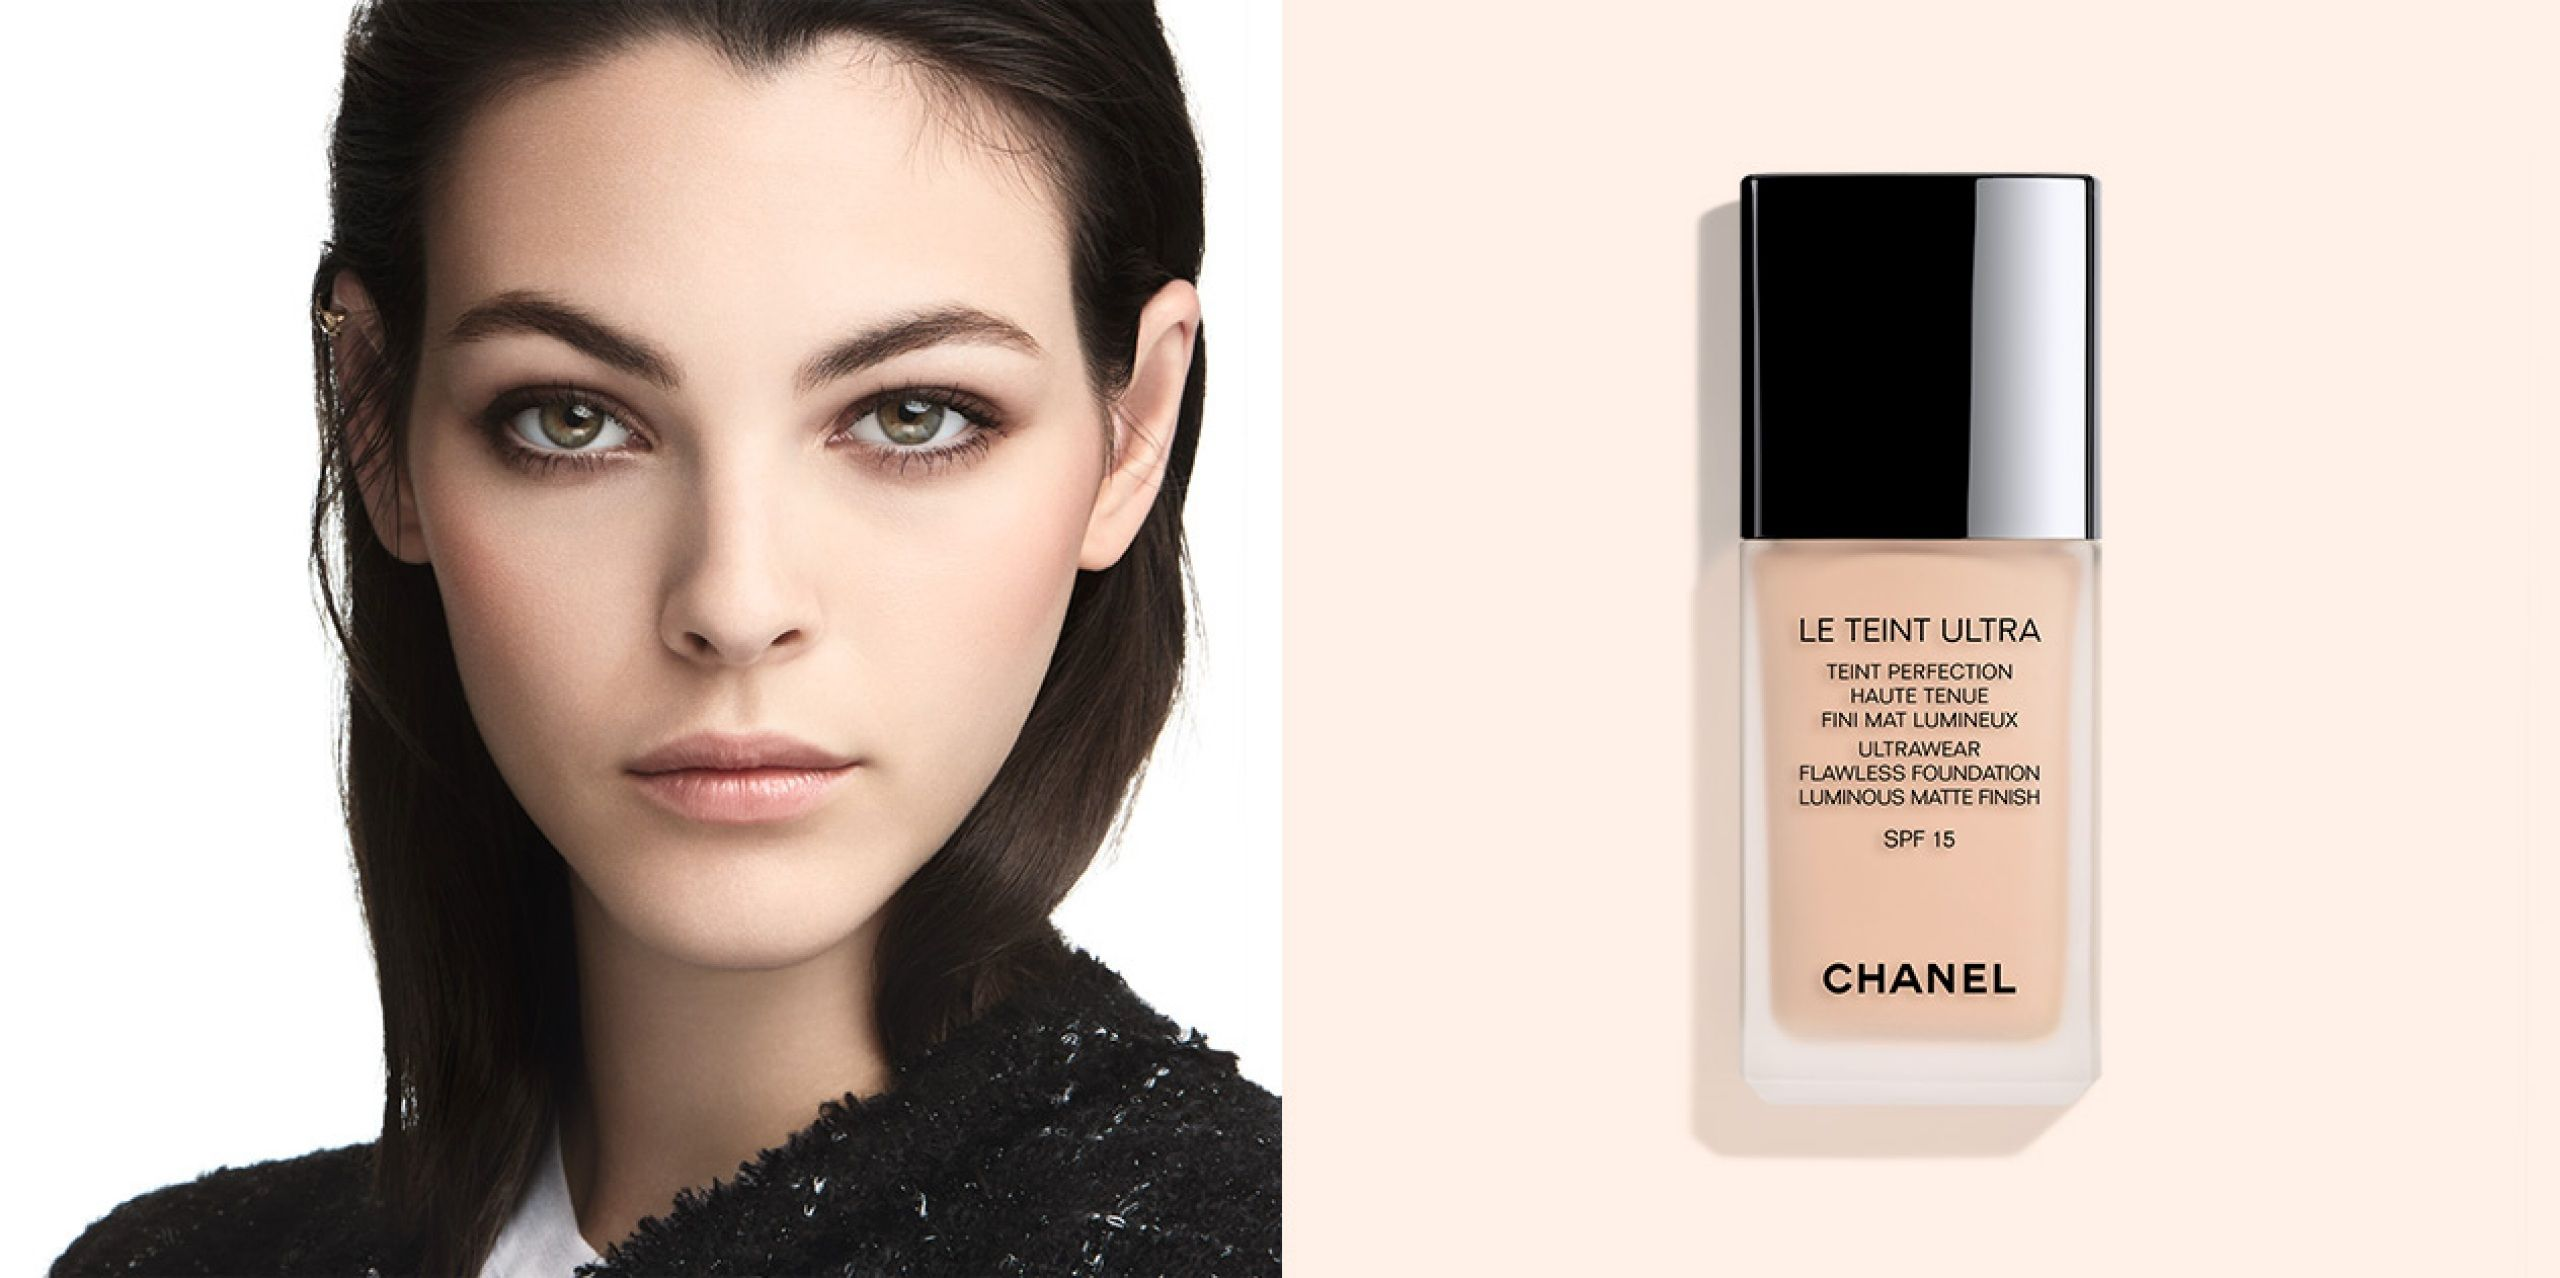 4392232b21 LE TEINT ULTRA - CHANEL - Official site | Make-up inspiration ...